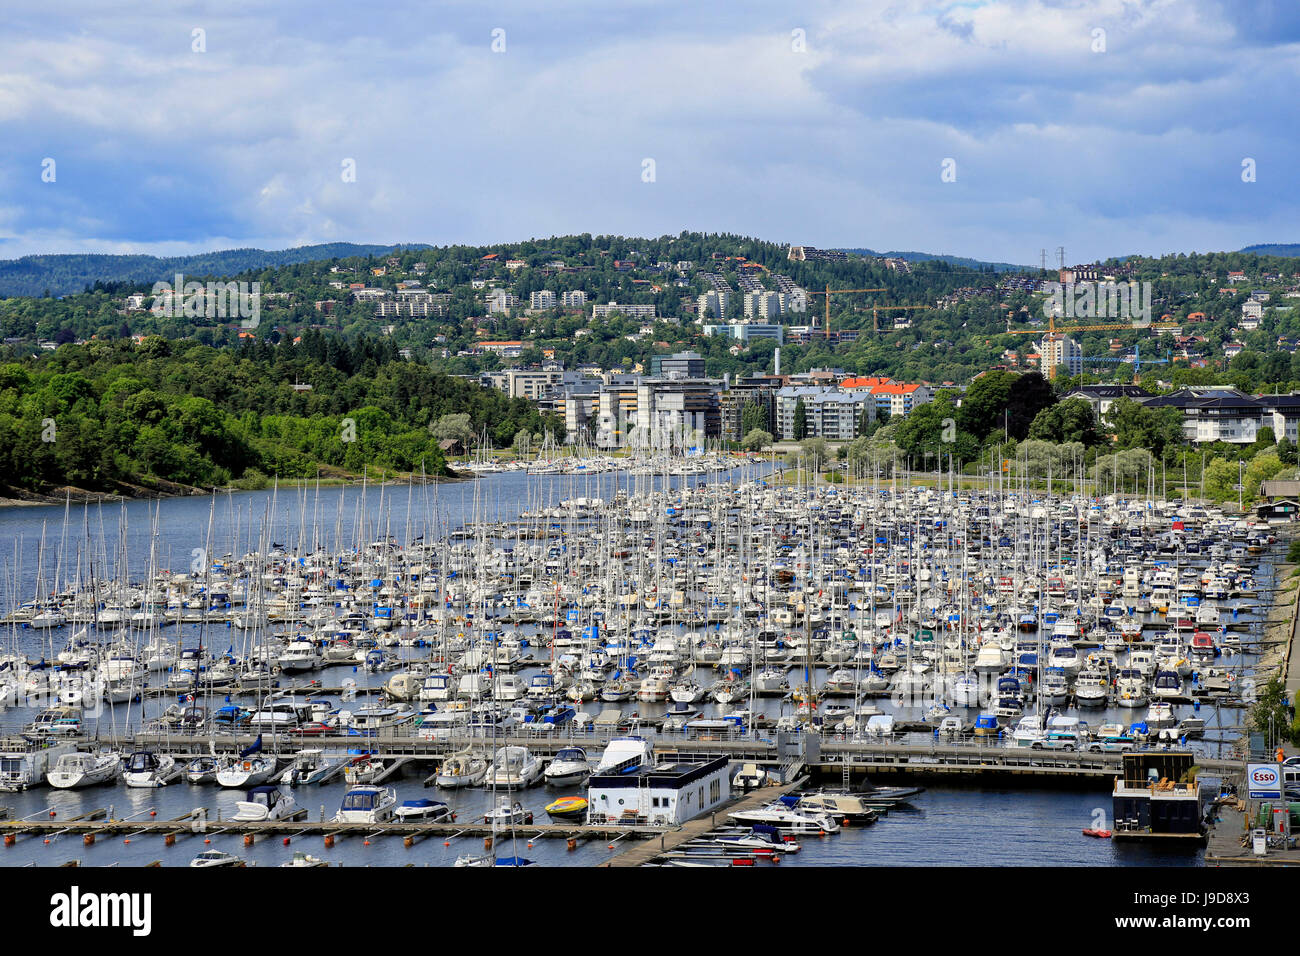 Kongen Marina, Oslo, Norway, Scandinavia, Europe - Stock Image